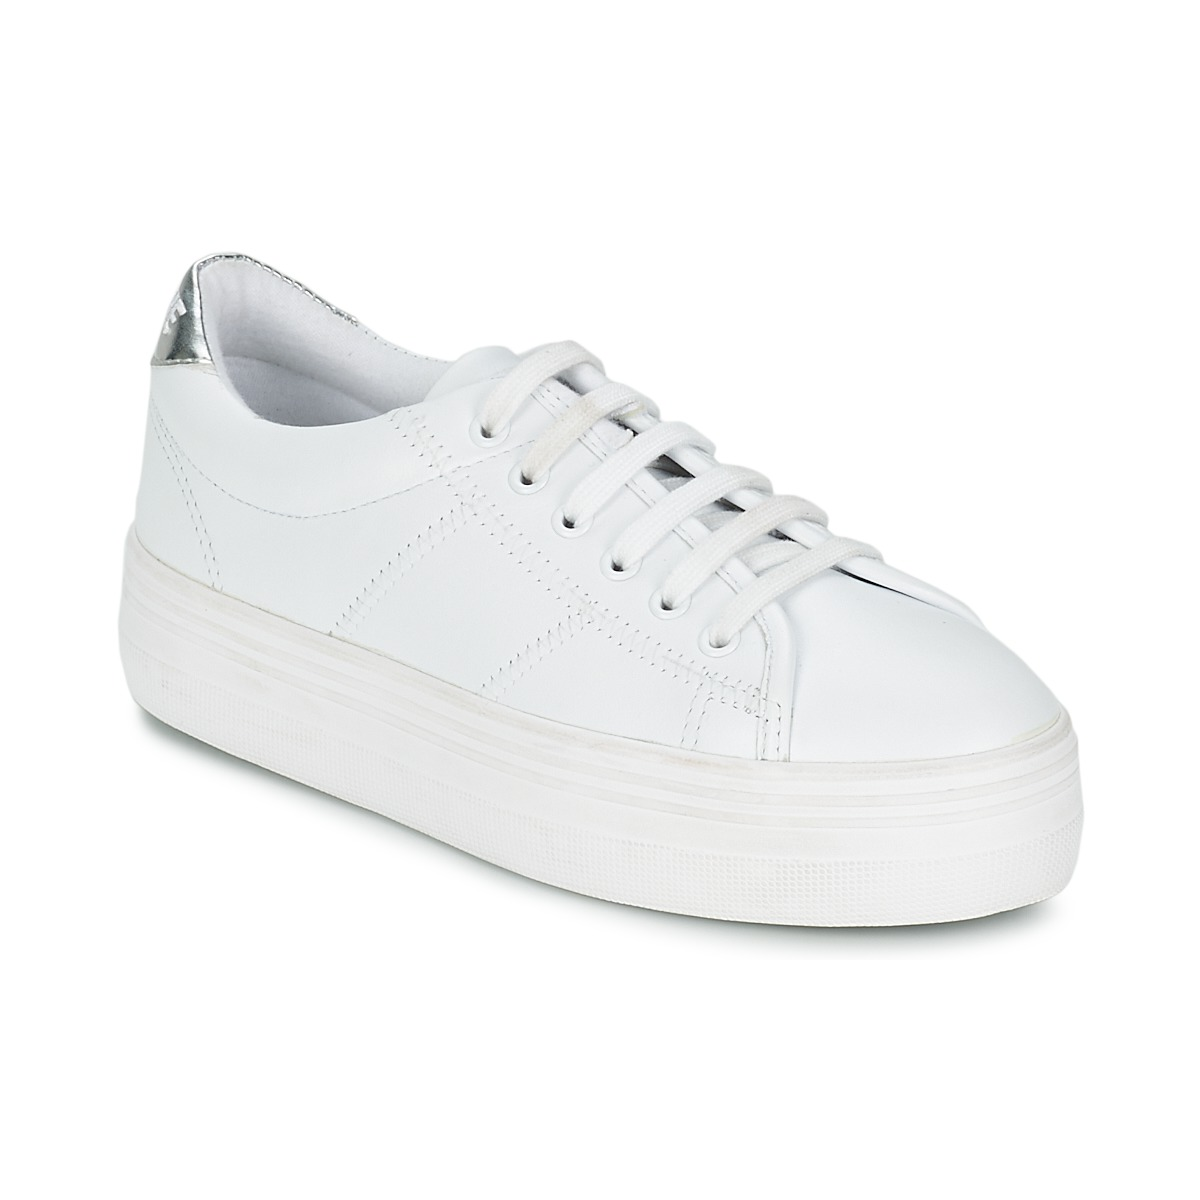 Baskets basses No Name PLATO SNEAKER Blanc / Argent